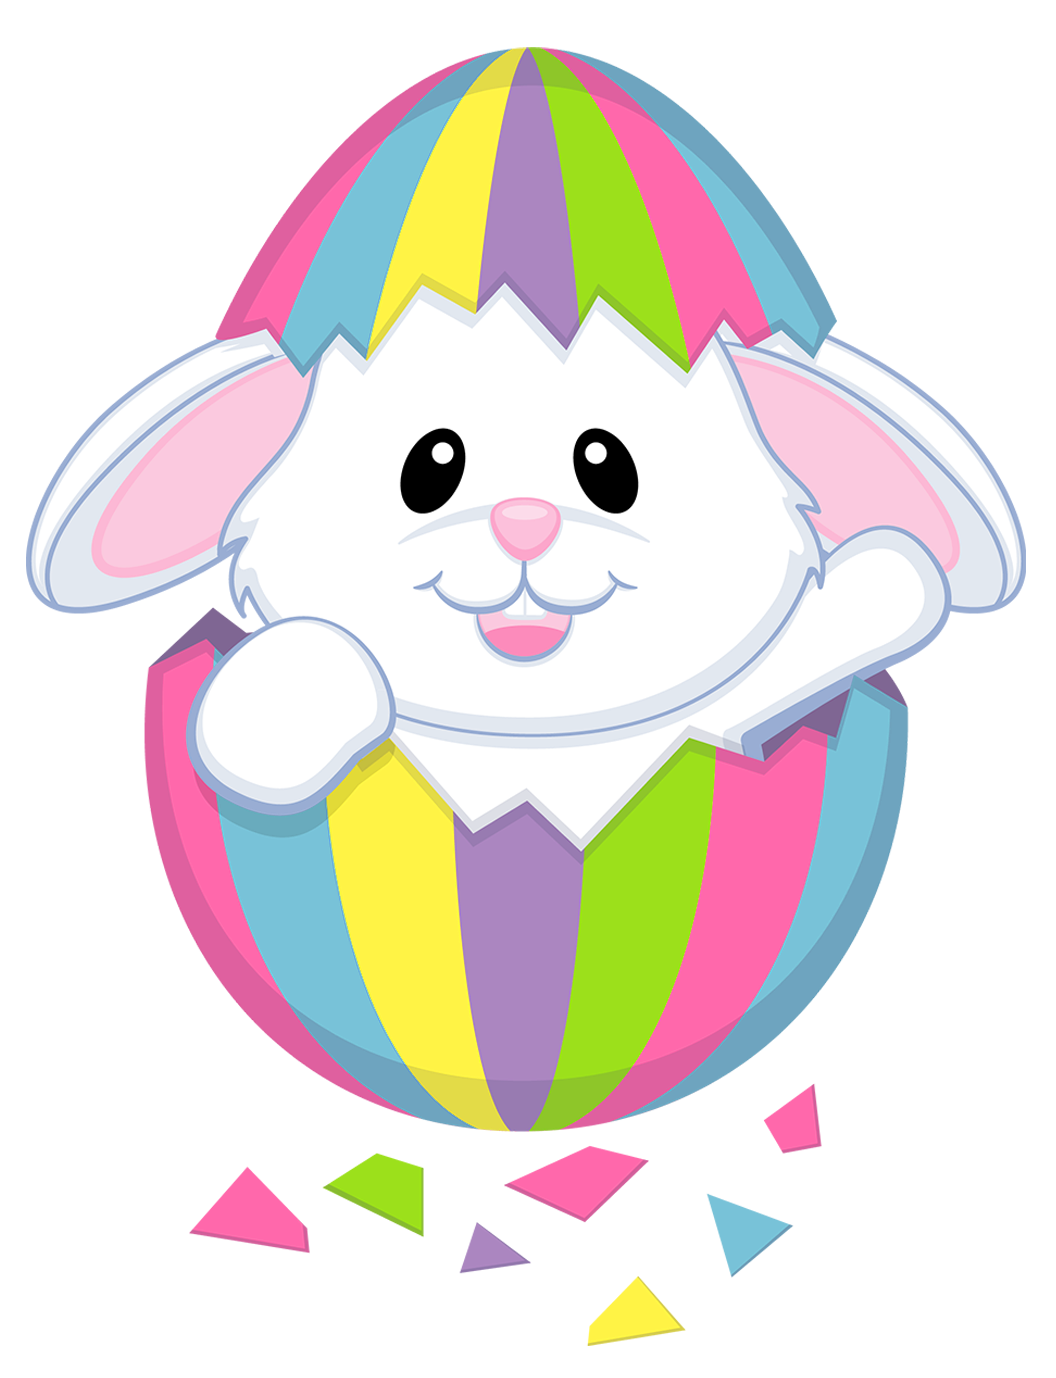 easter bunny clipart best easter eggs pinterest easter bunny rh pinterest com easter rabbit clipart free easter rabbit clipart free